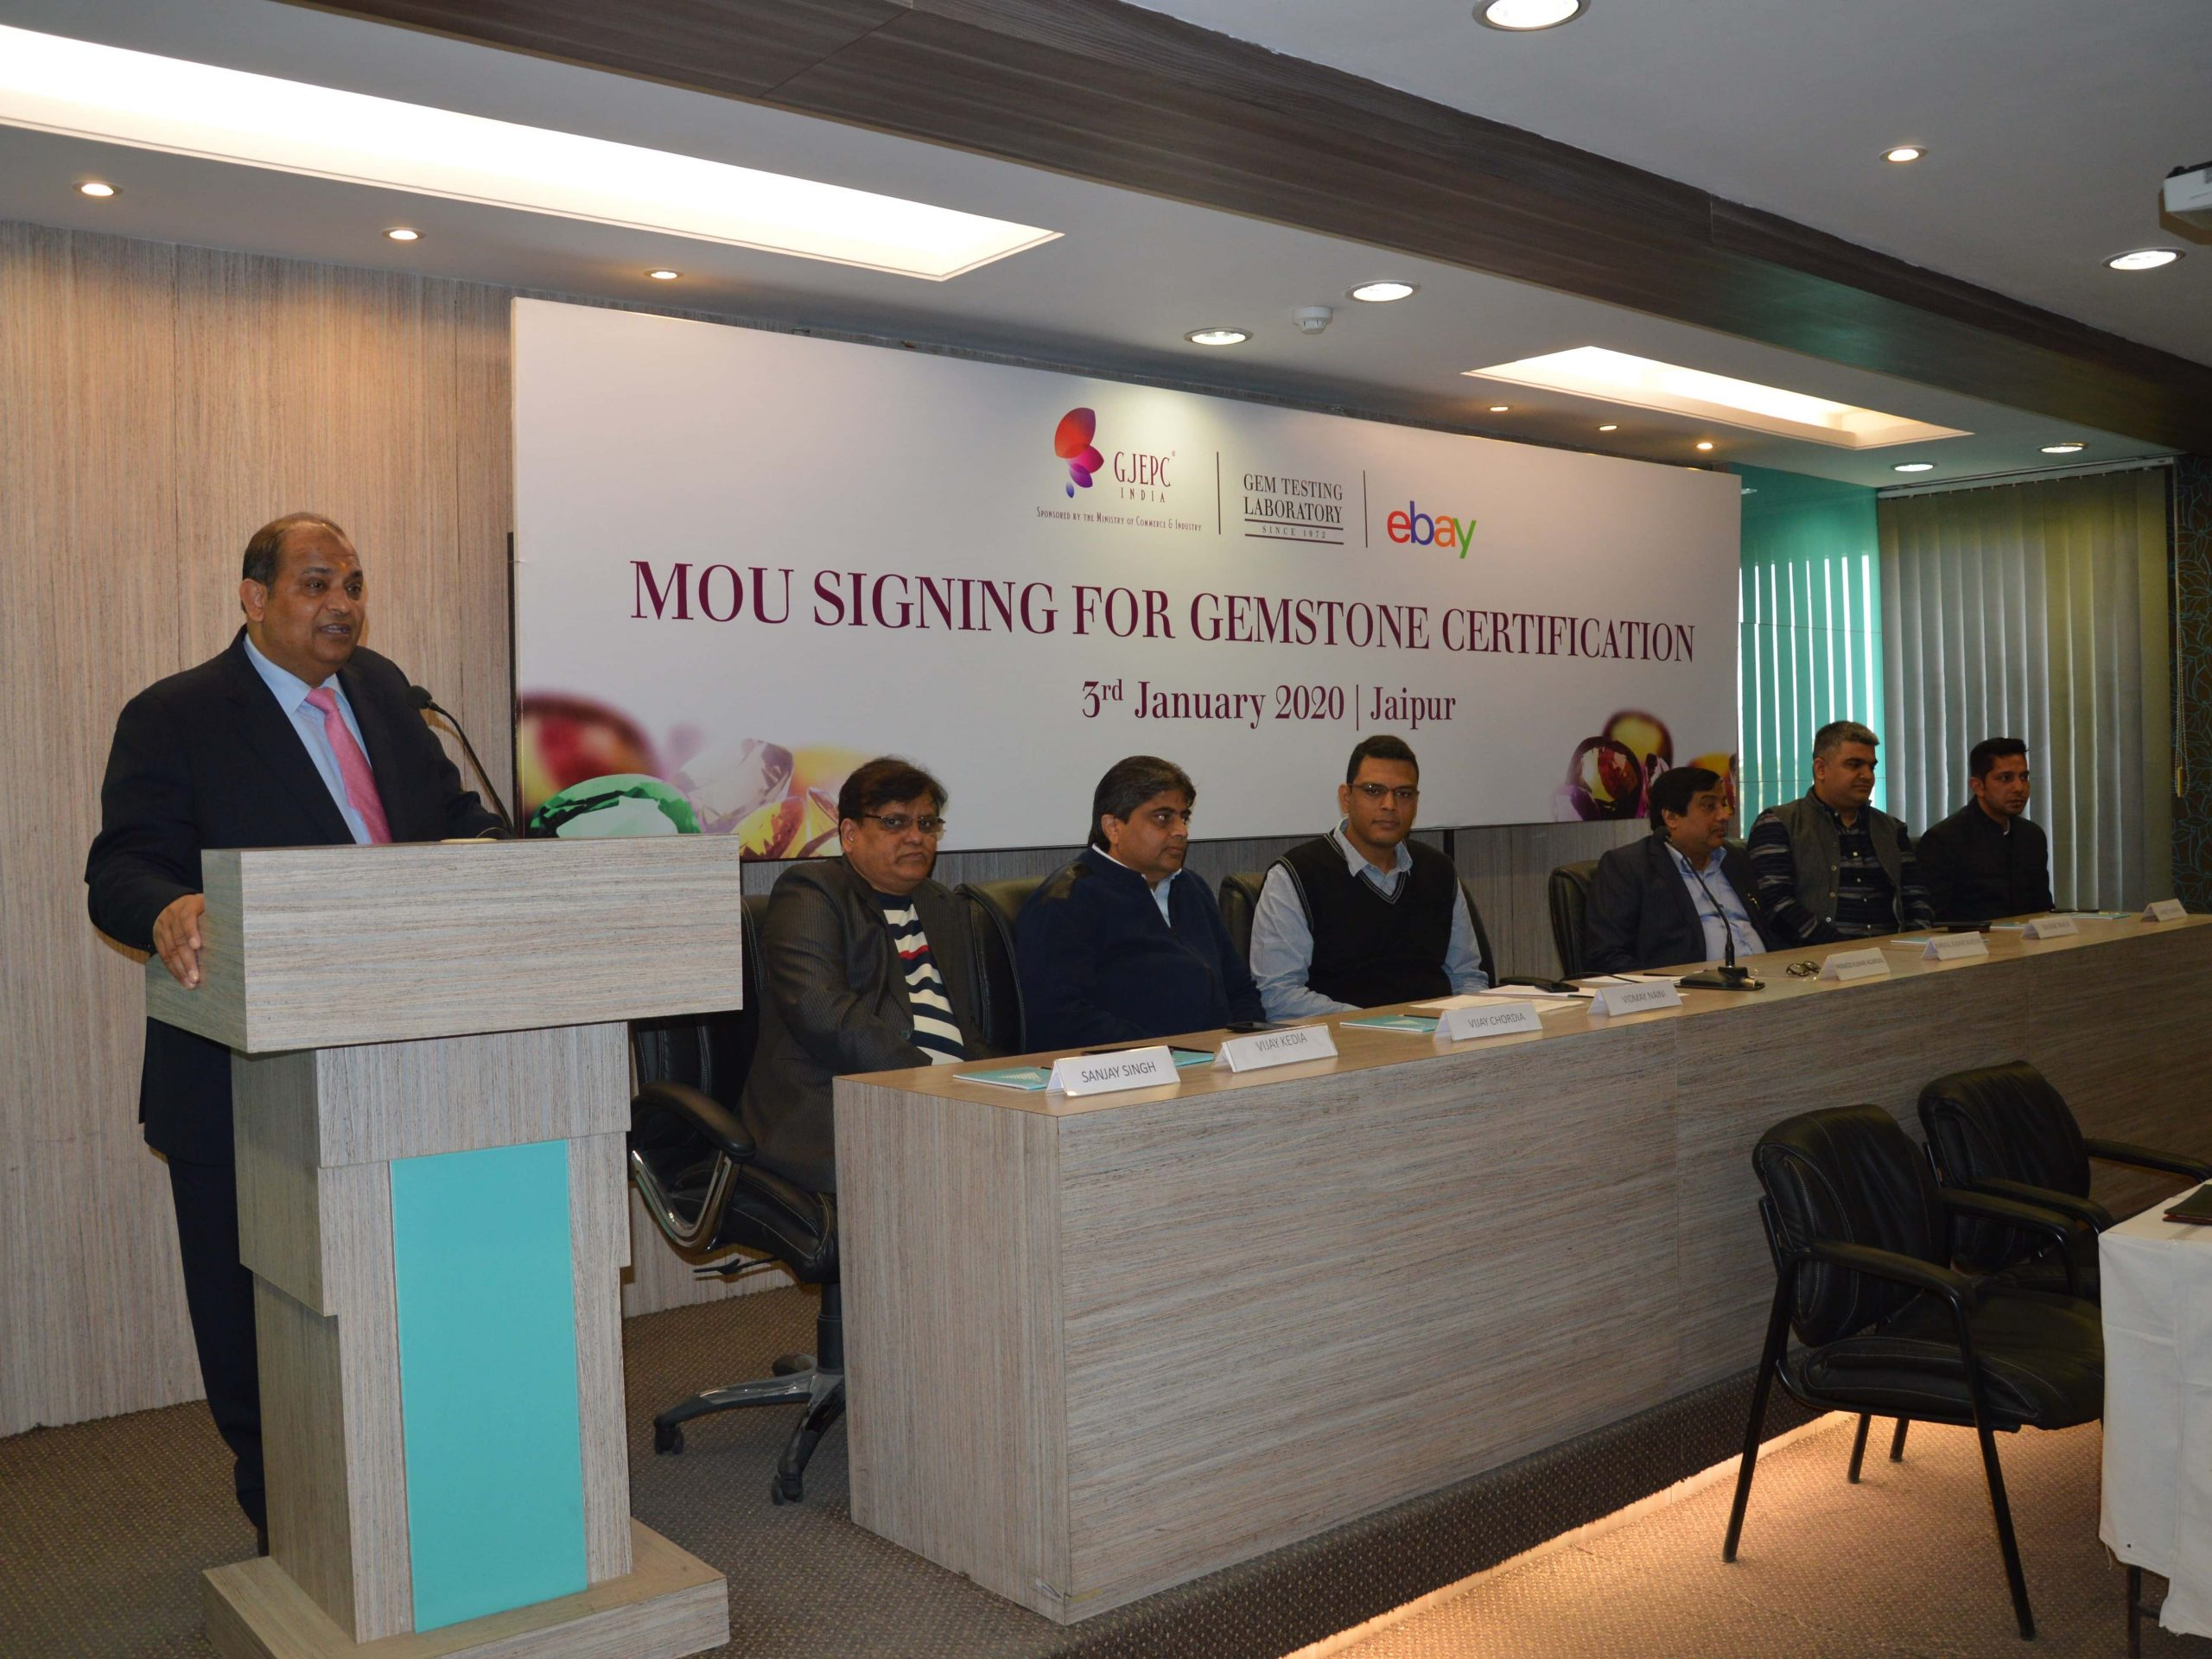 Mr. Pramod Agrawal, Chairman, GJEPC addressing the audience at the MoU signing ceremony